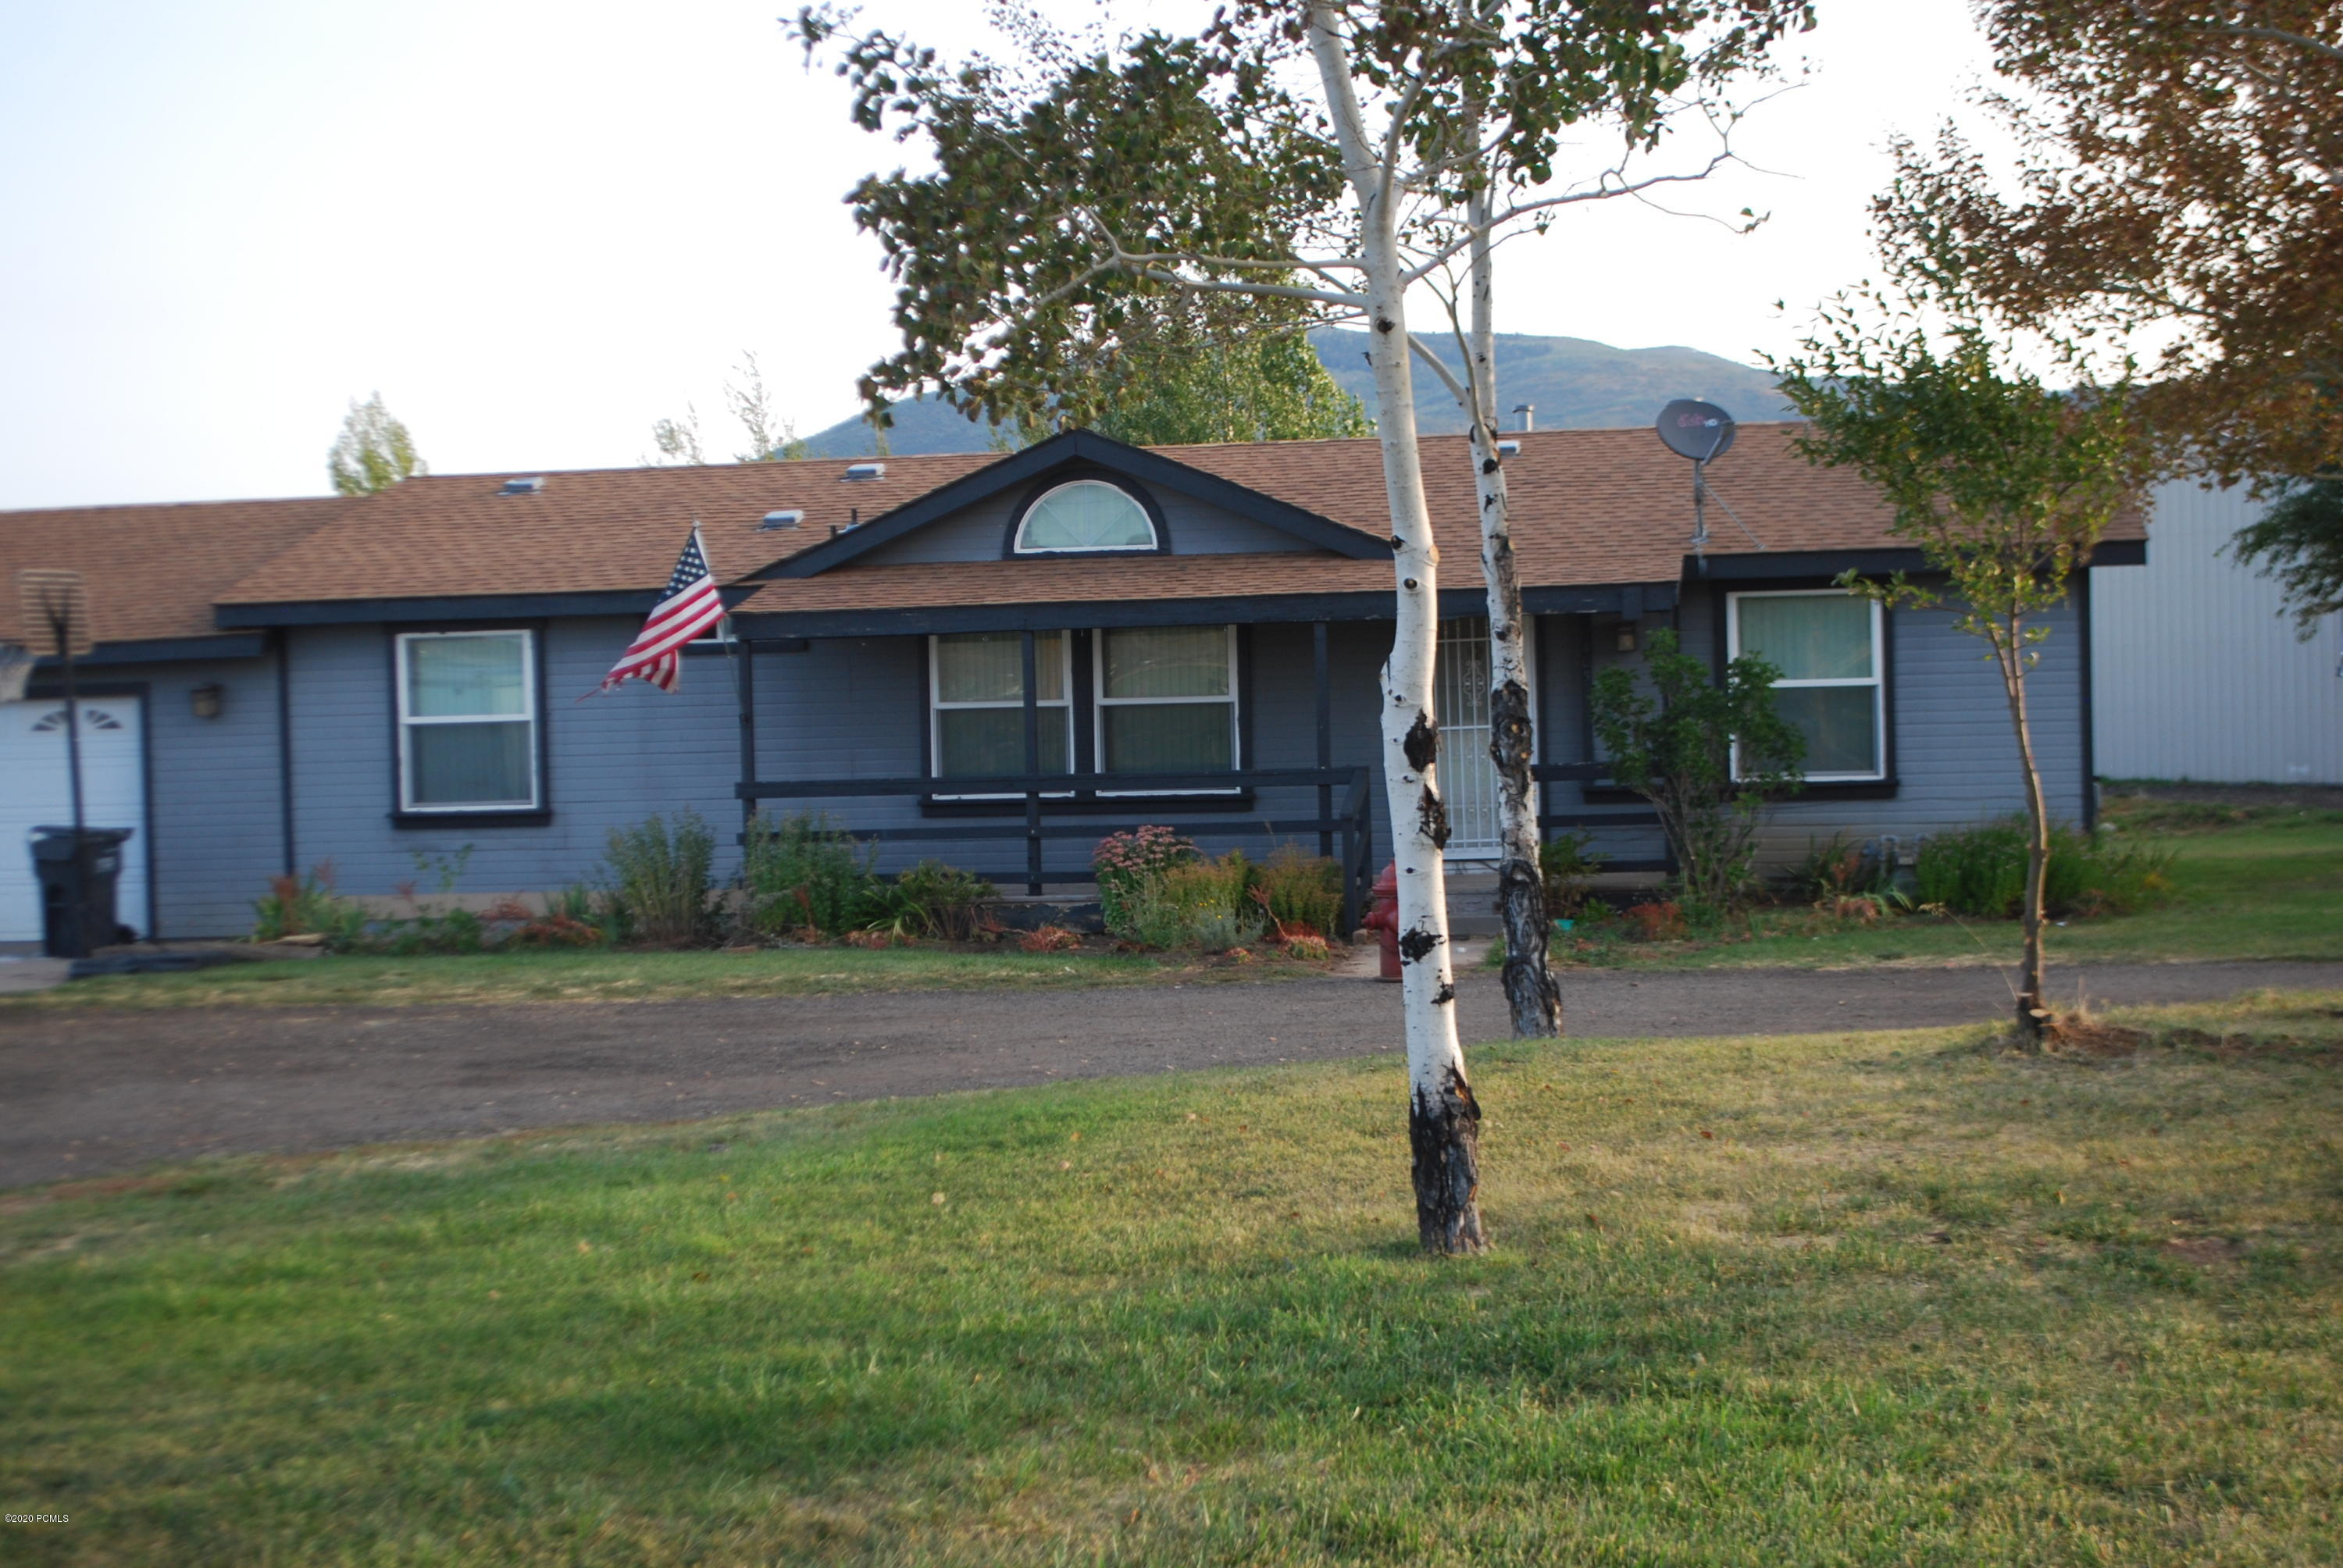 405 2200 S., Francis, Utah 84036, 2 Bedrooms Bedrooms, ,2 BathroomsBathrooms,Single Family,For Sale,2200 S.,12003503